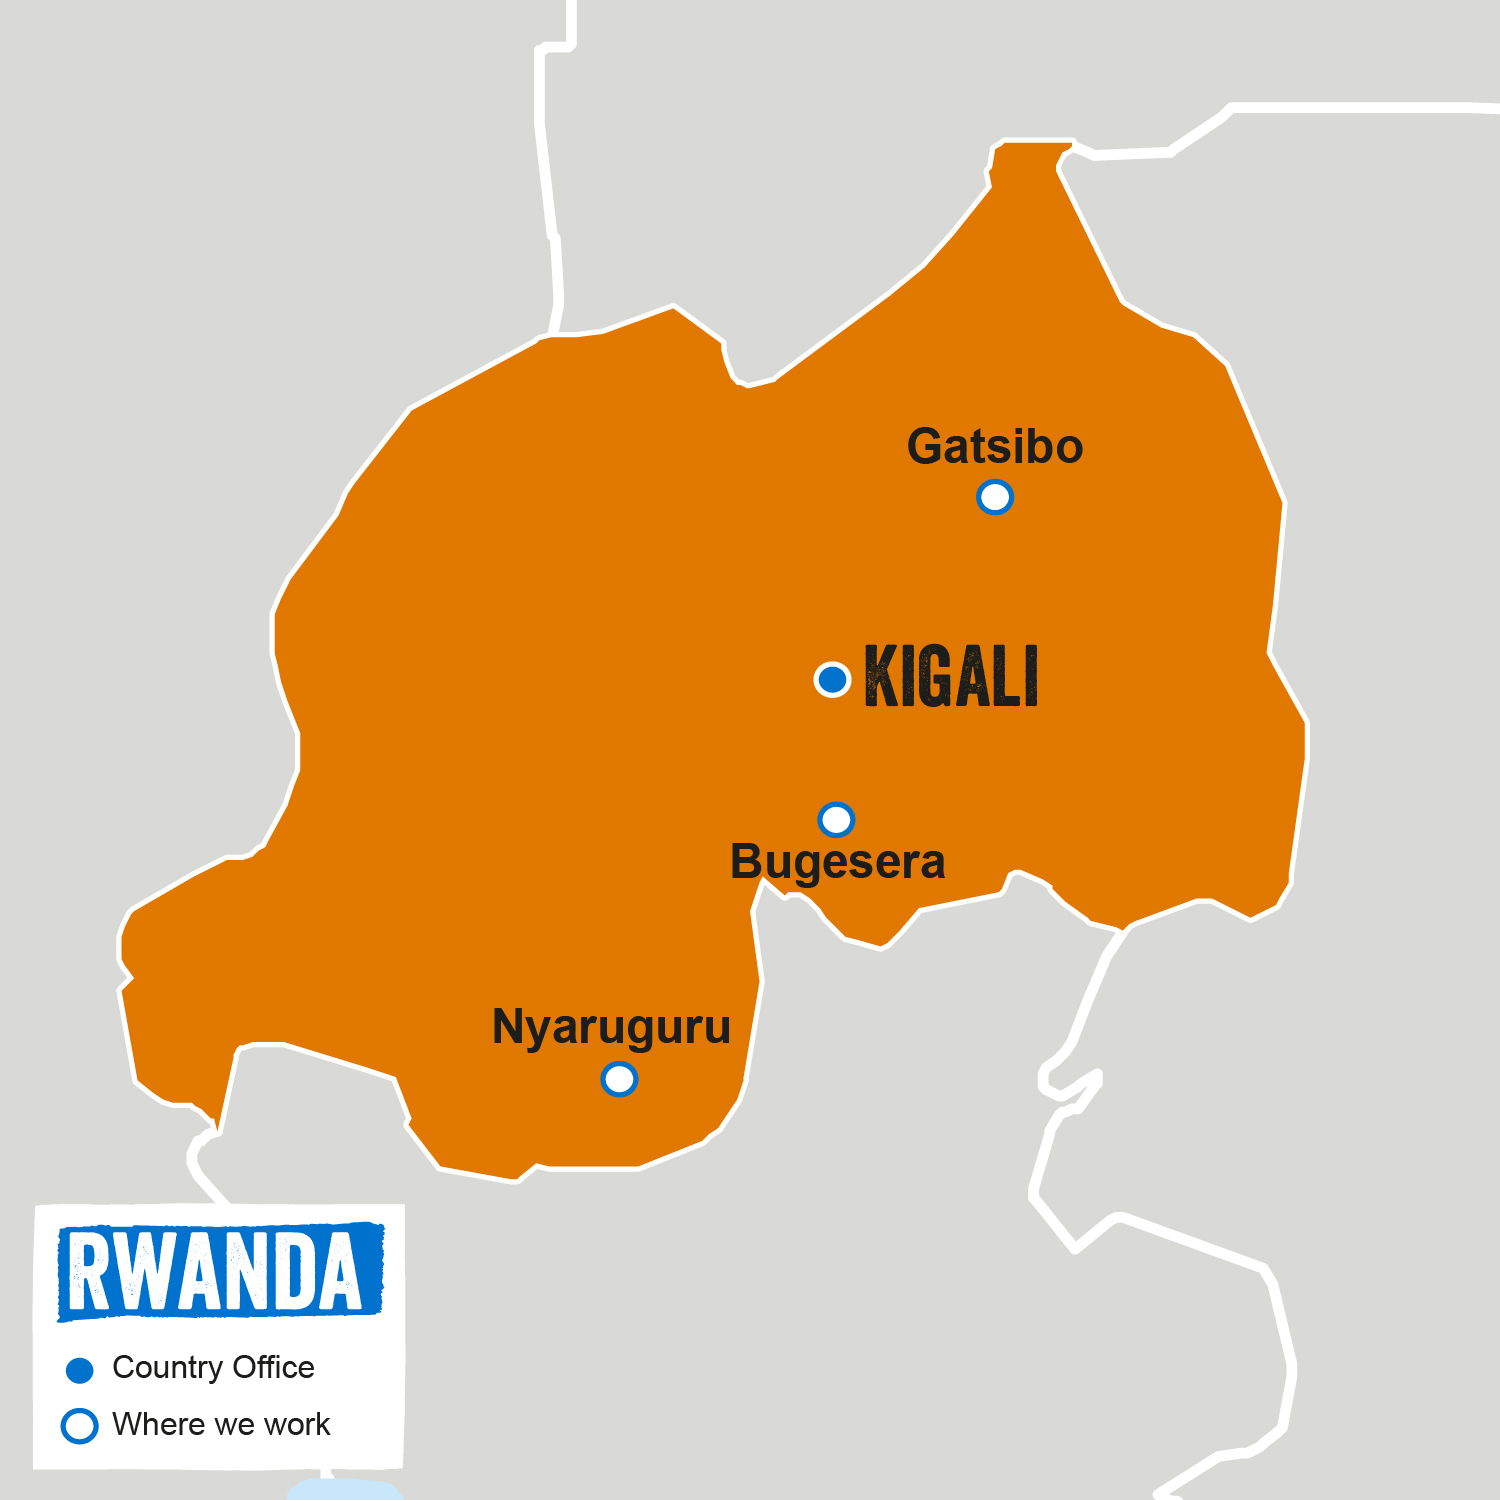 Map of Rwanda featuring location of our Country Office and where we work.